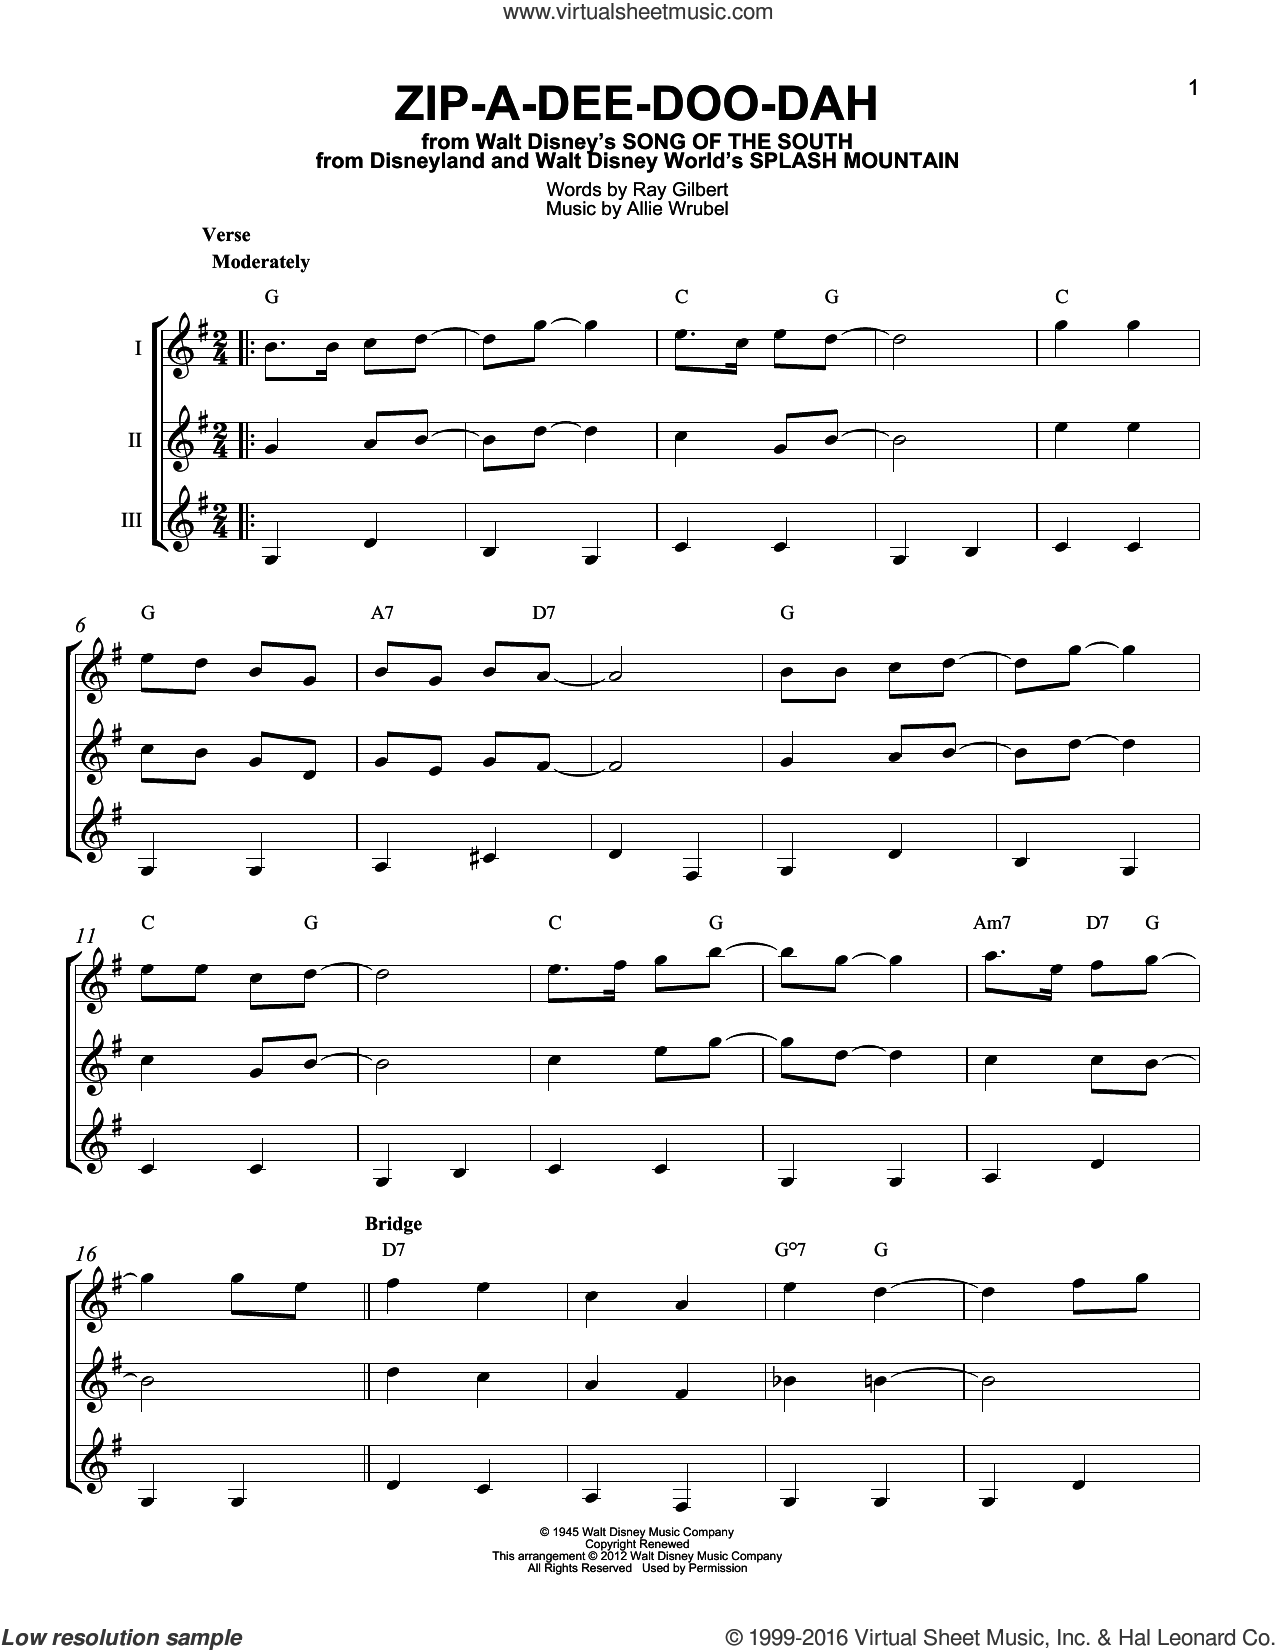 Zip-A-Dee-Doo-Dah sheet music for guitar ensemble by Ray Gilbert and Allie Wrubel. Score Image Preview.